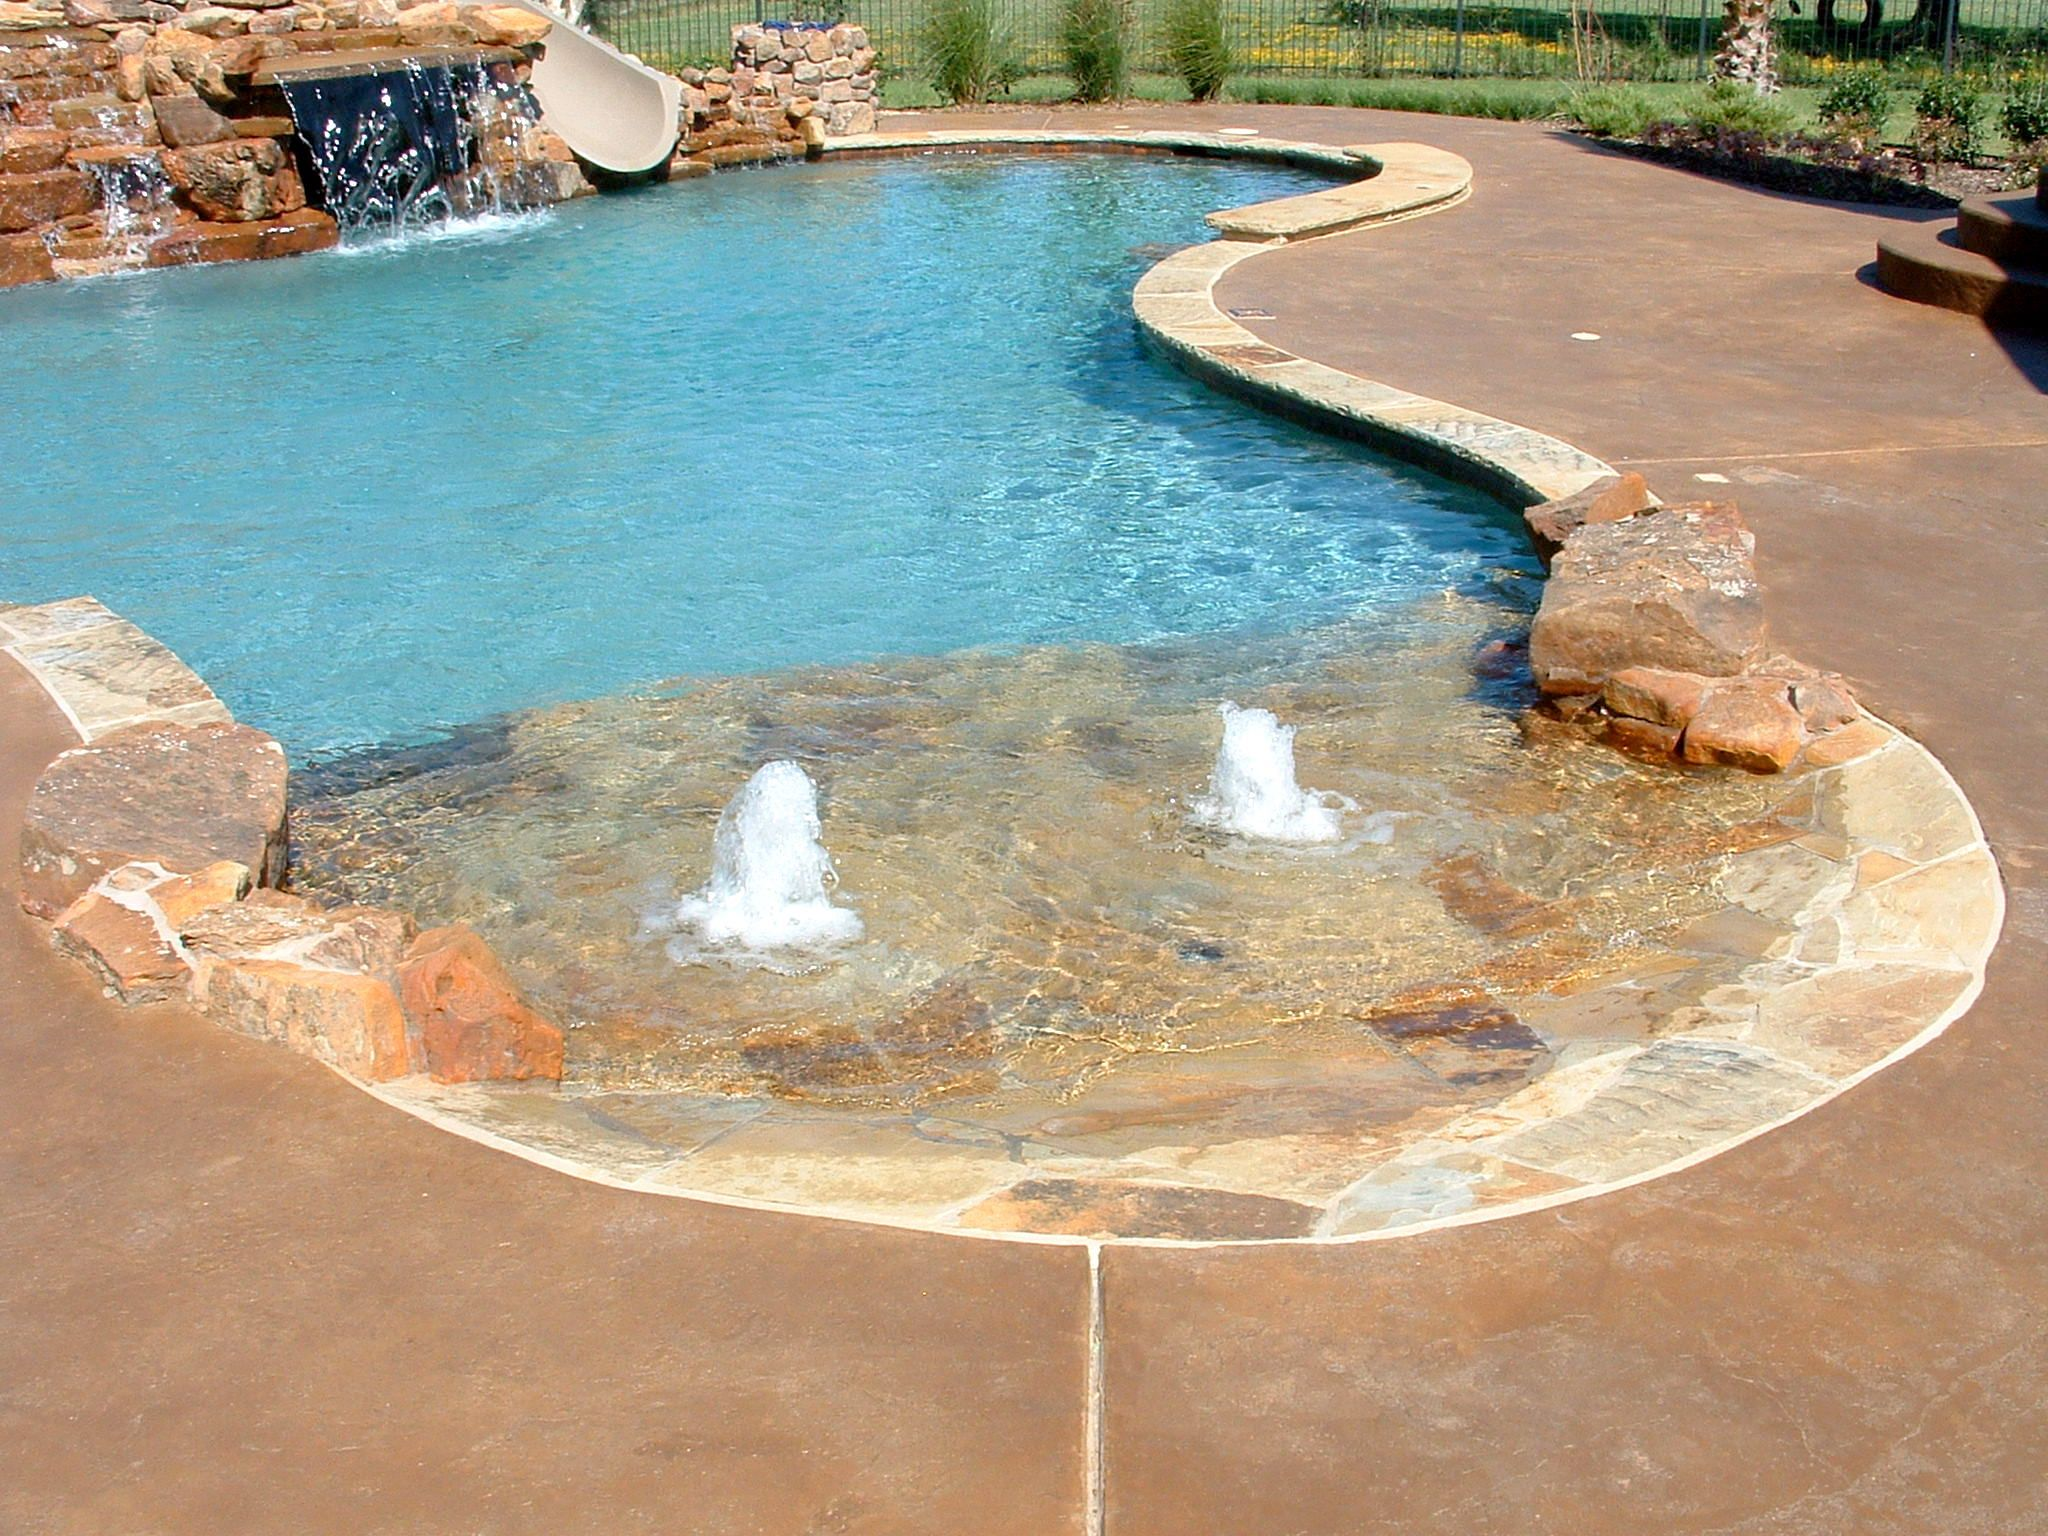 Beach entry swimming pool designs images galleries with a bite - Beach entry swimming pool designs ...